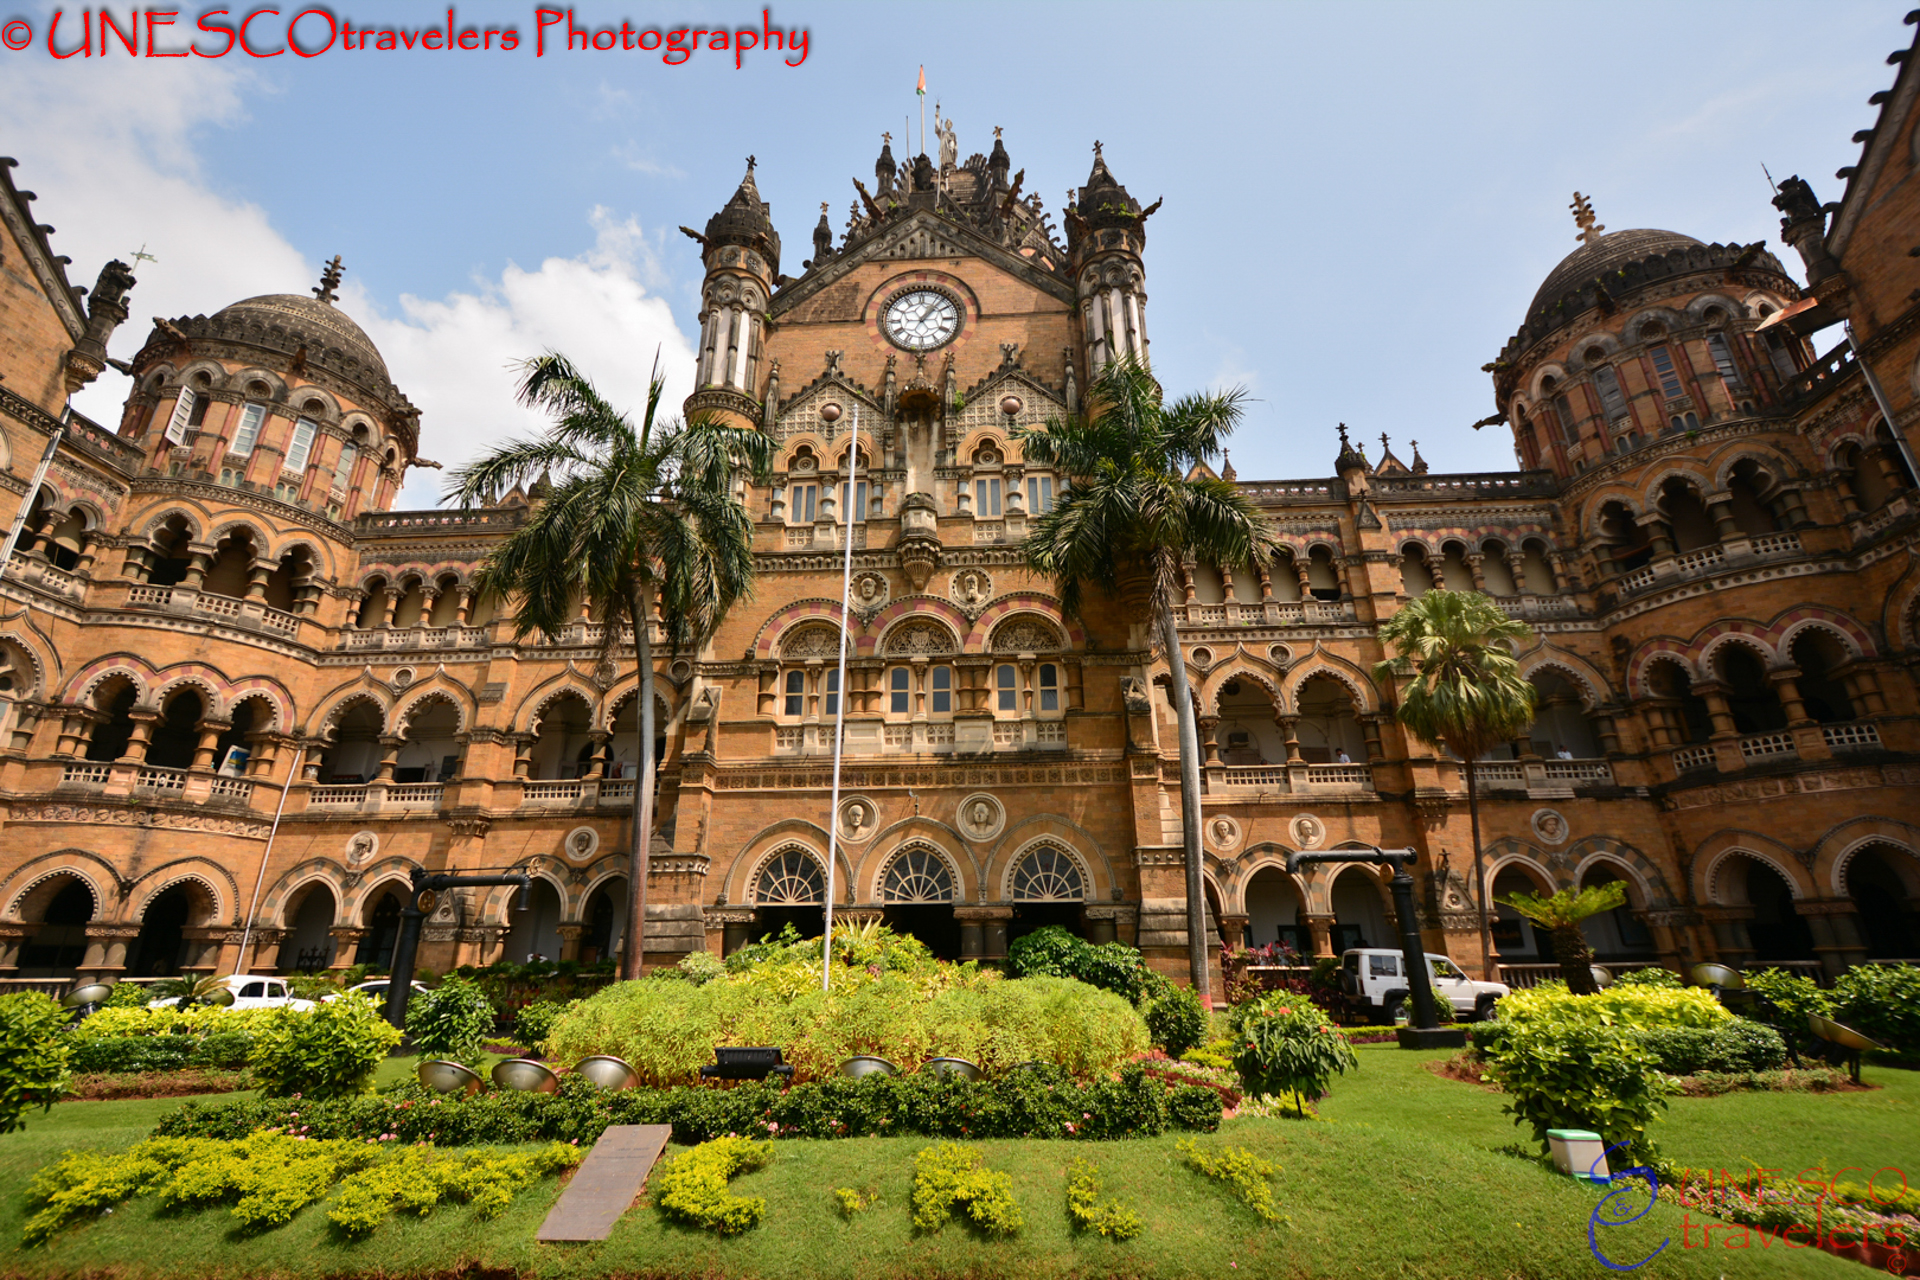 The Largest Rail Station in India Chhatrapati Shivaji Terminus (formerly Victoria Terminus) - India UNESCOtravelers